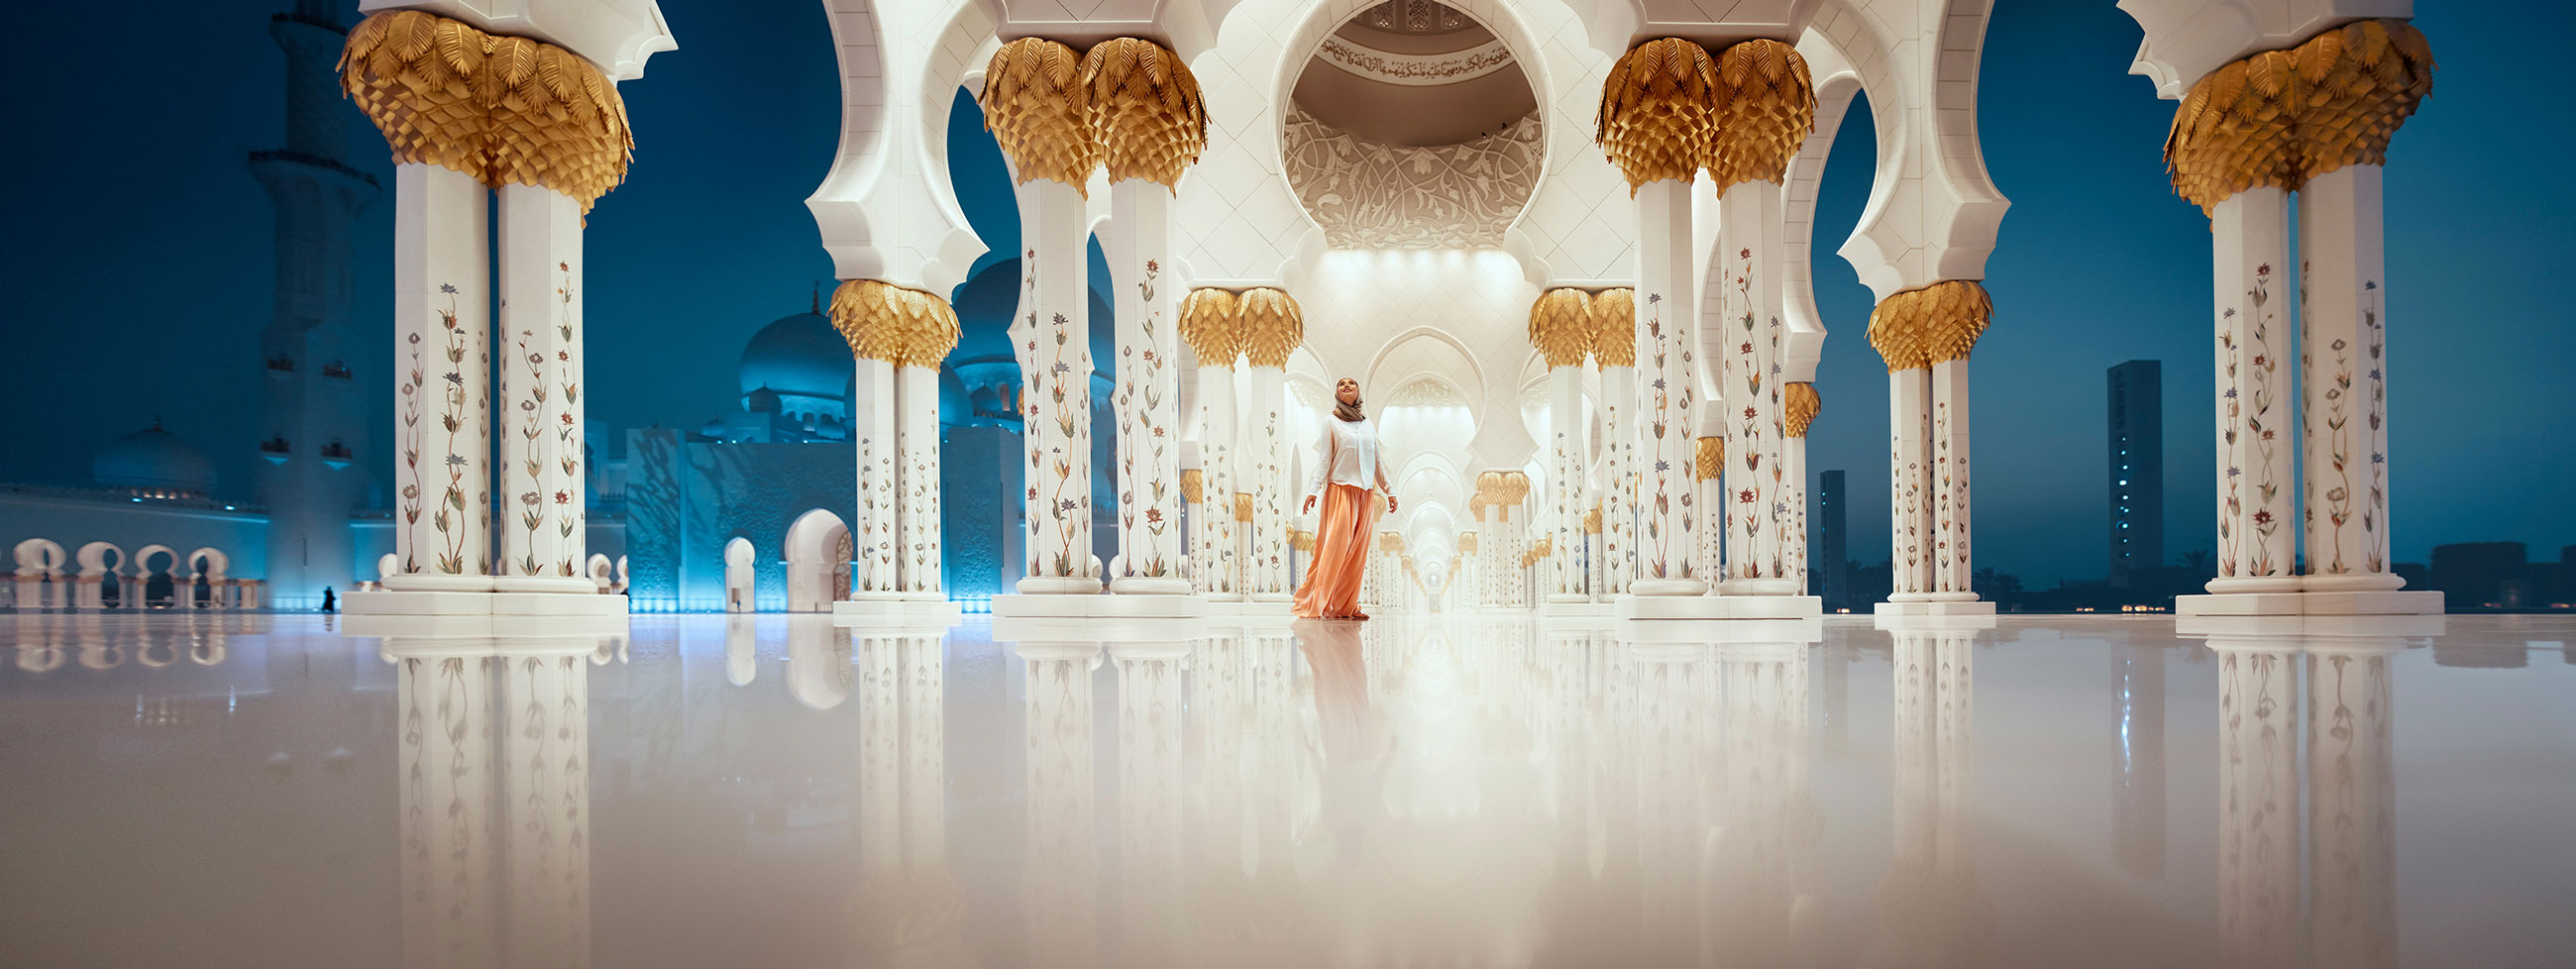 ABU_DHABI_MOSQUE_WEBSITE